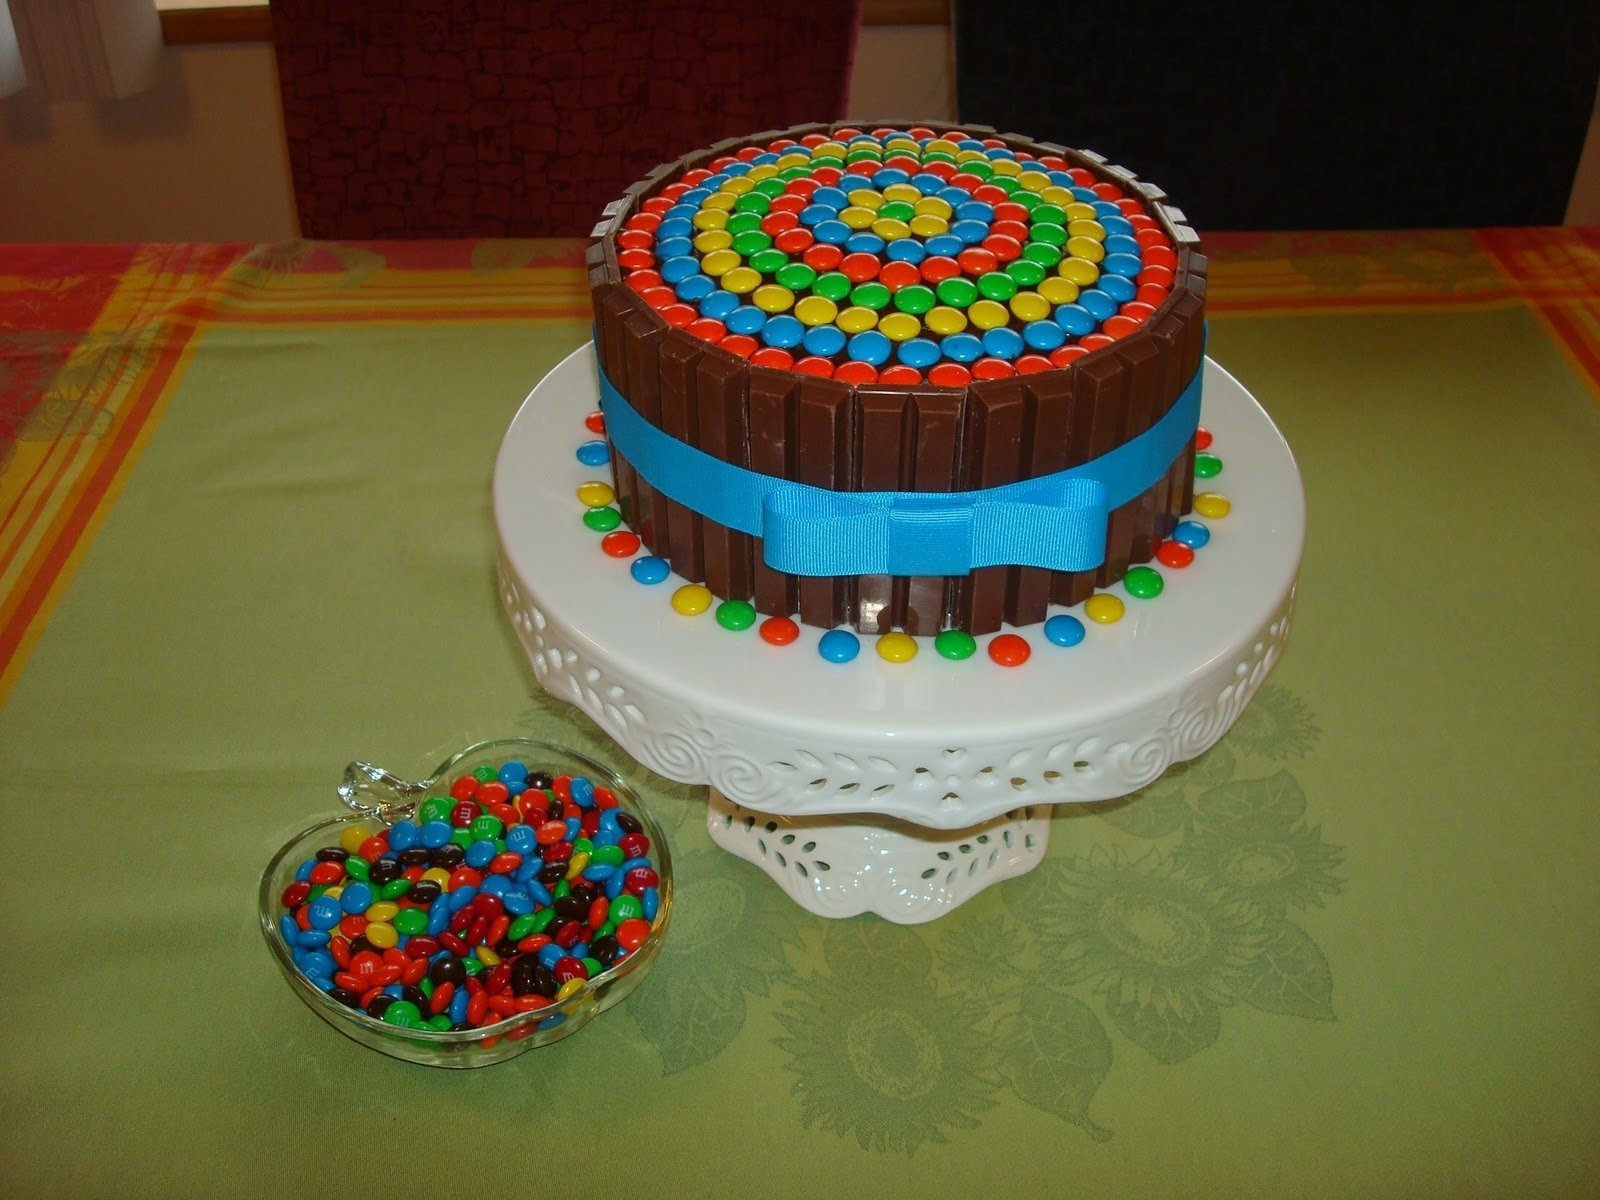 10 Great 4 Year Old Birthday Cake Ideas 12 Boy Cakes Well Technically